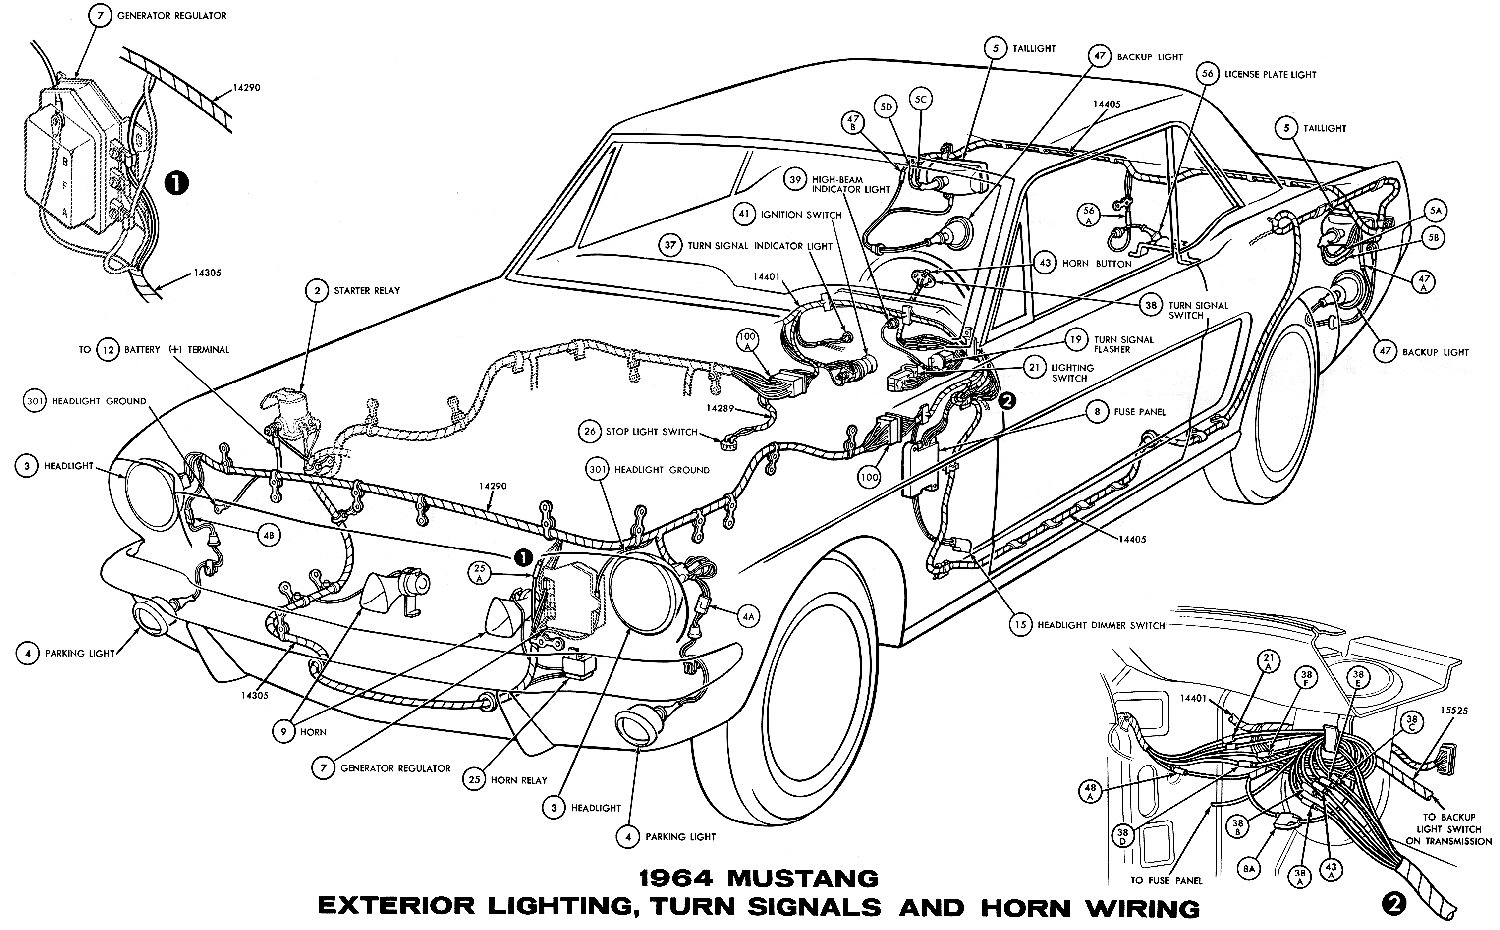 1964h 1964 mustang wiring diagrams average joe restoration 66 mustang voltage regulator wiring diagram at bakdesigns.co